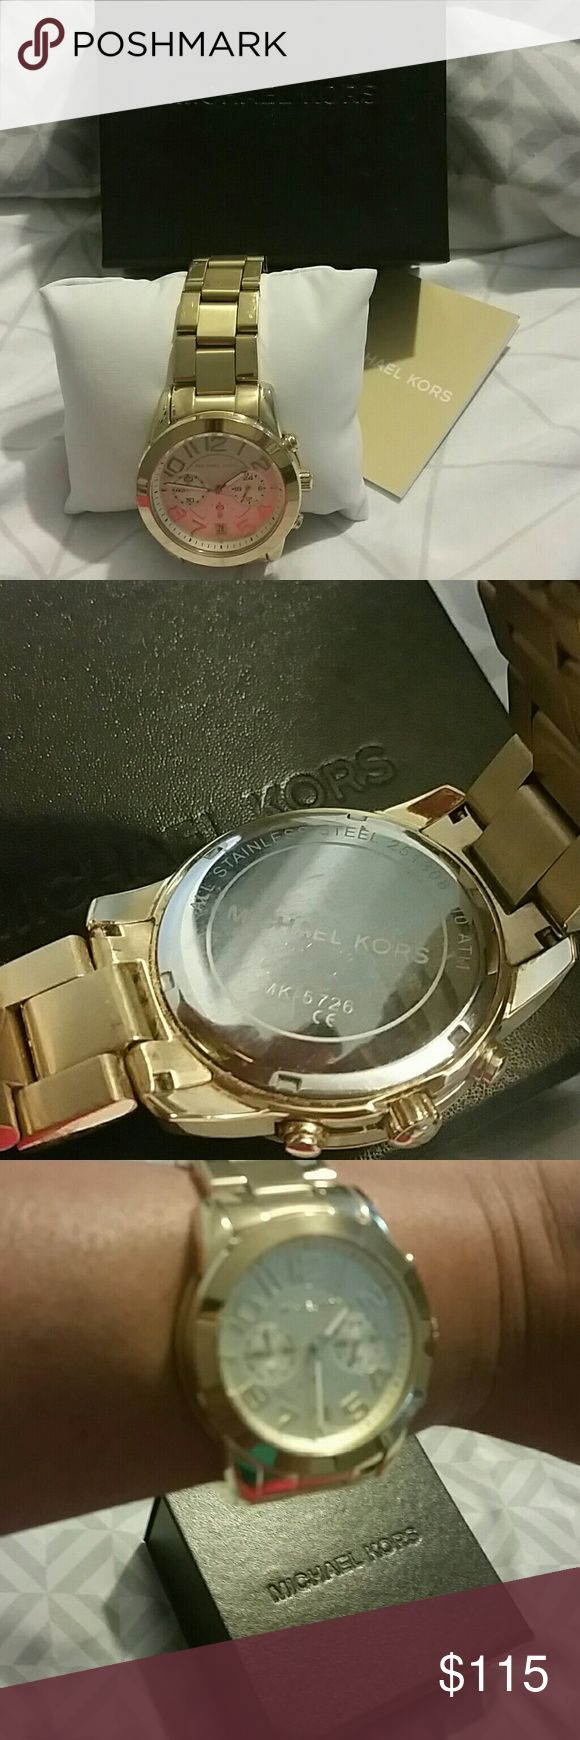 Michael Kors Watch MK Authentic Watch, New with booklet,pillow &box Michael Kors Accessories Watches